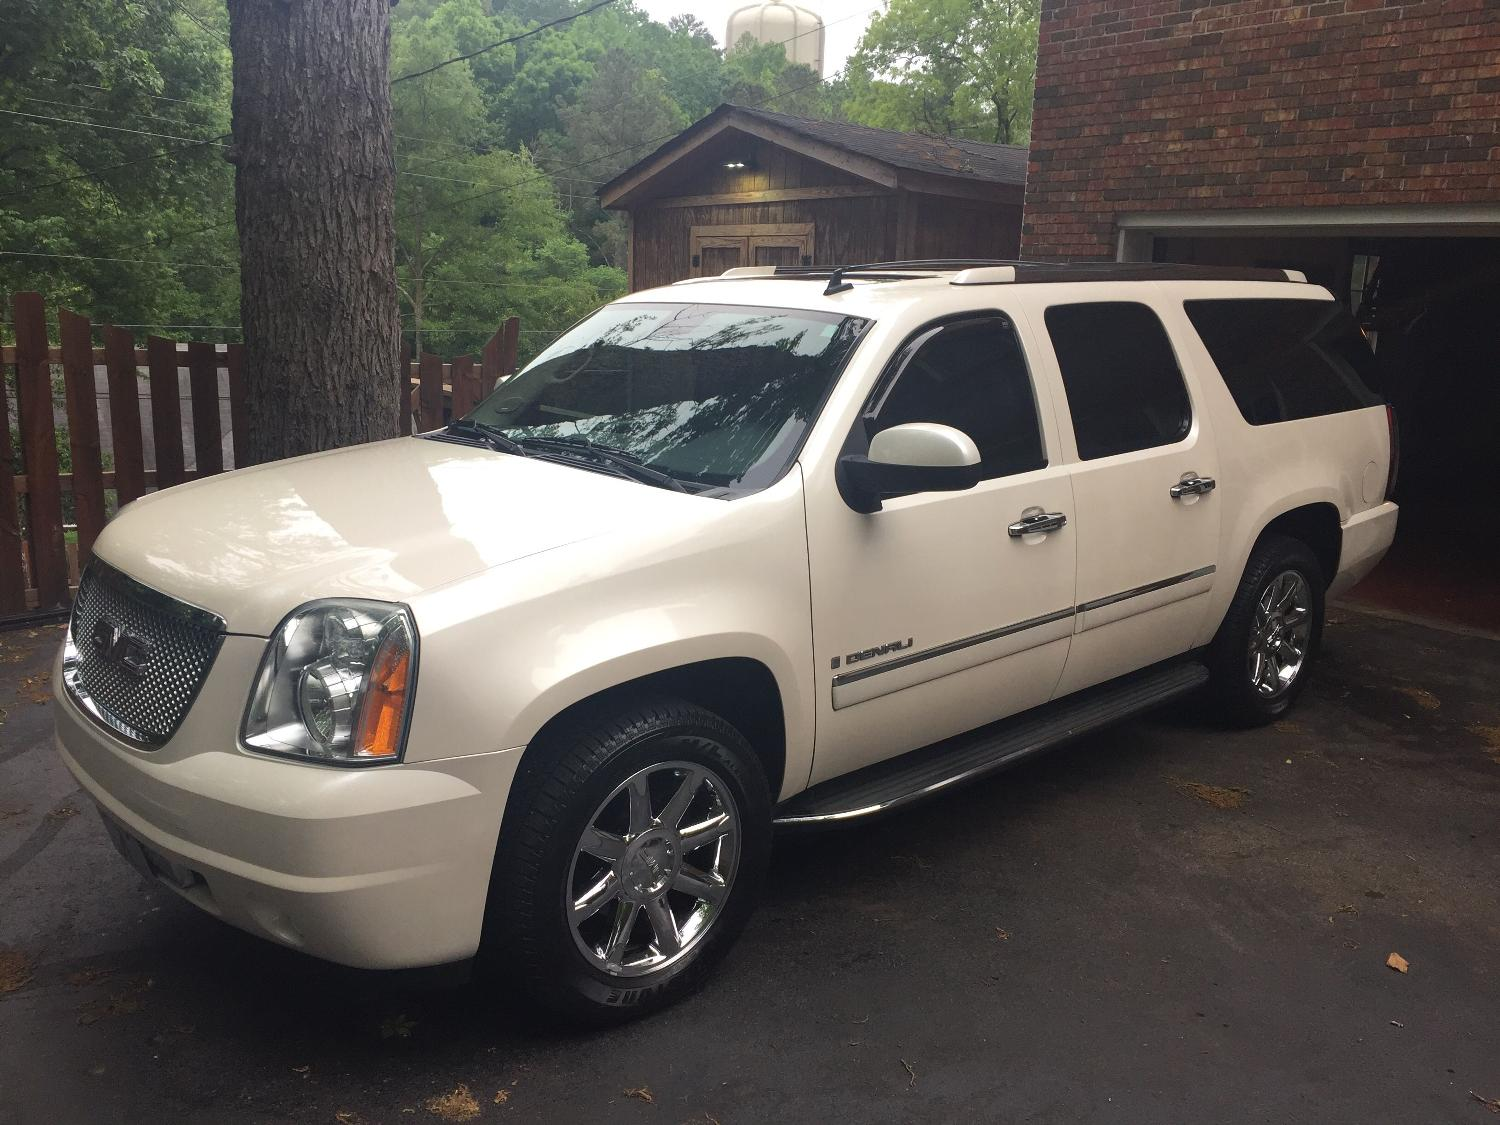 find more 2009 gmc yukon xl denali for sale at up to 90 off mountain brook al. Black Bedroom Furniture Sets. Home Design Ideas